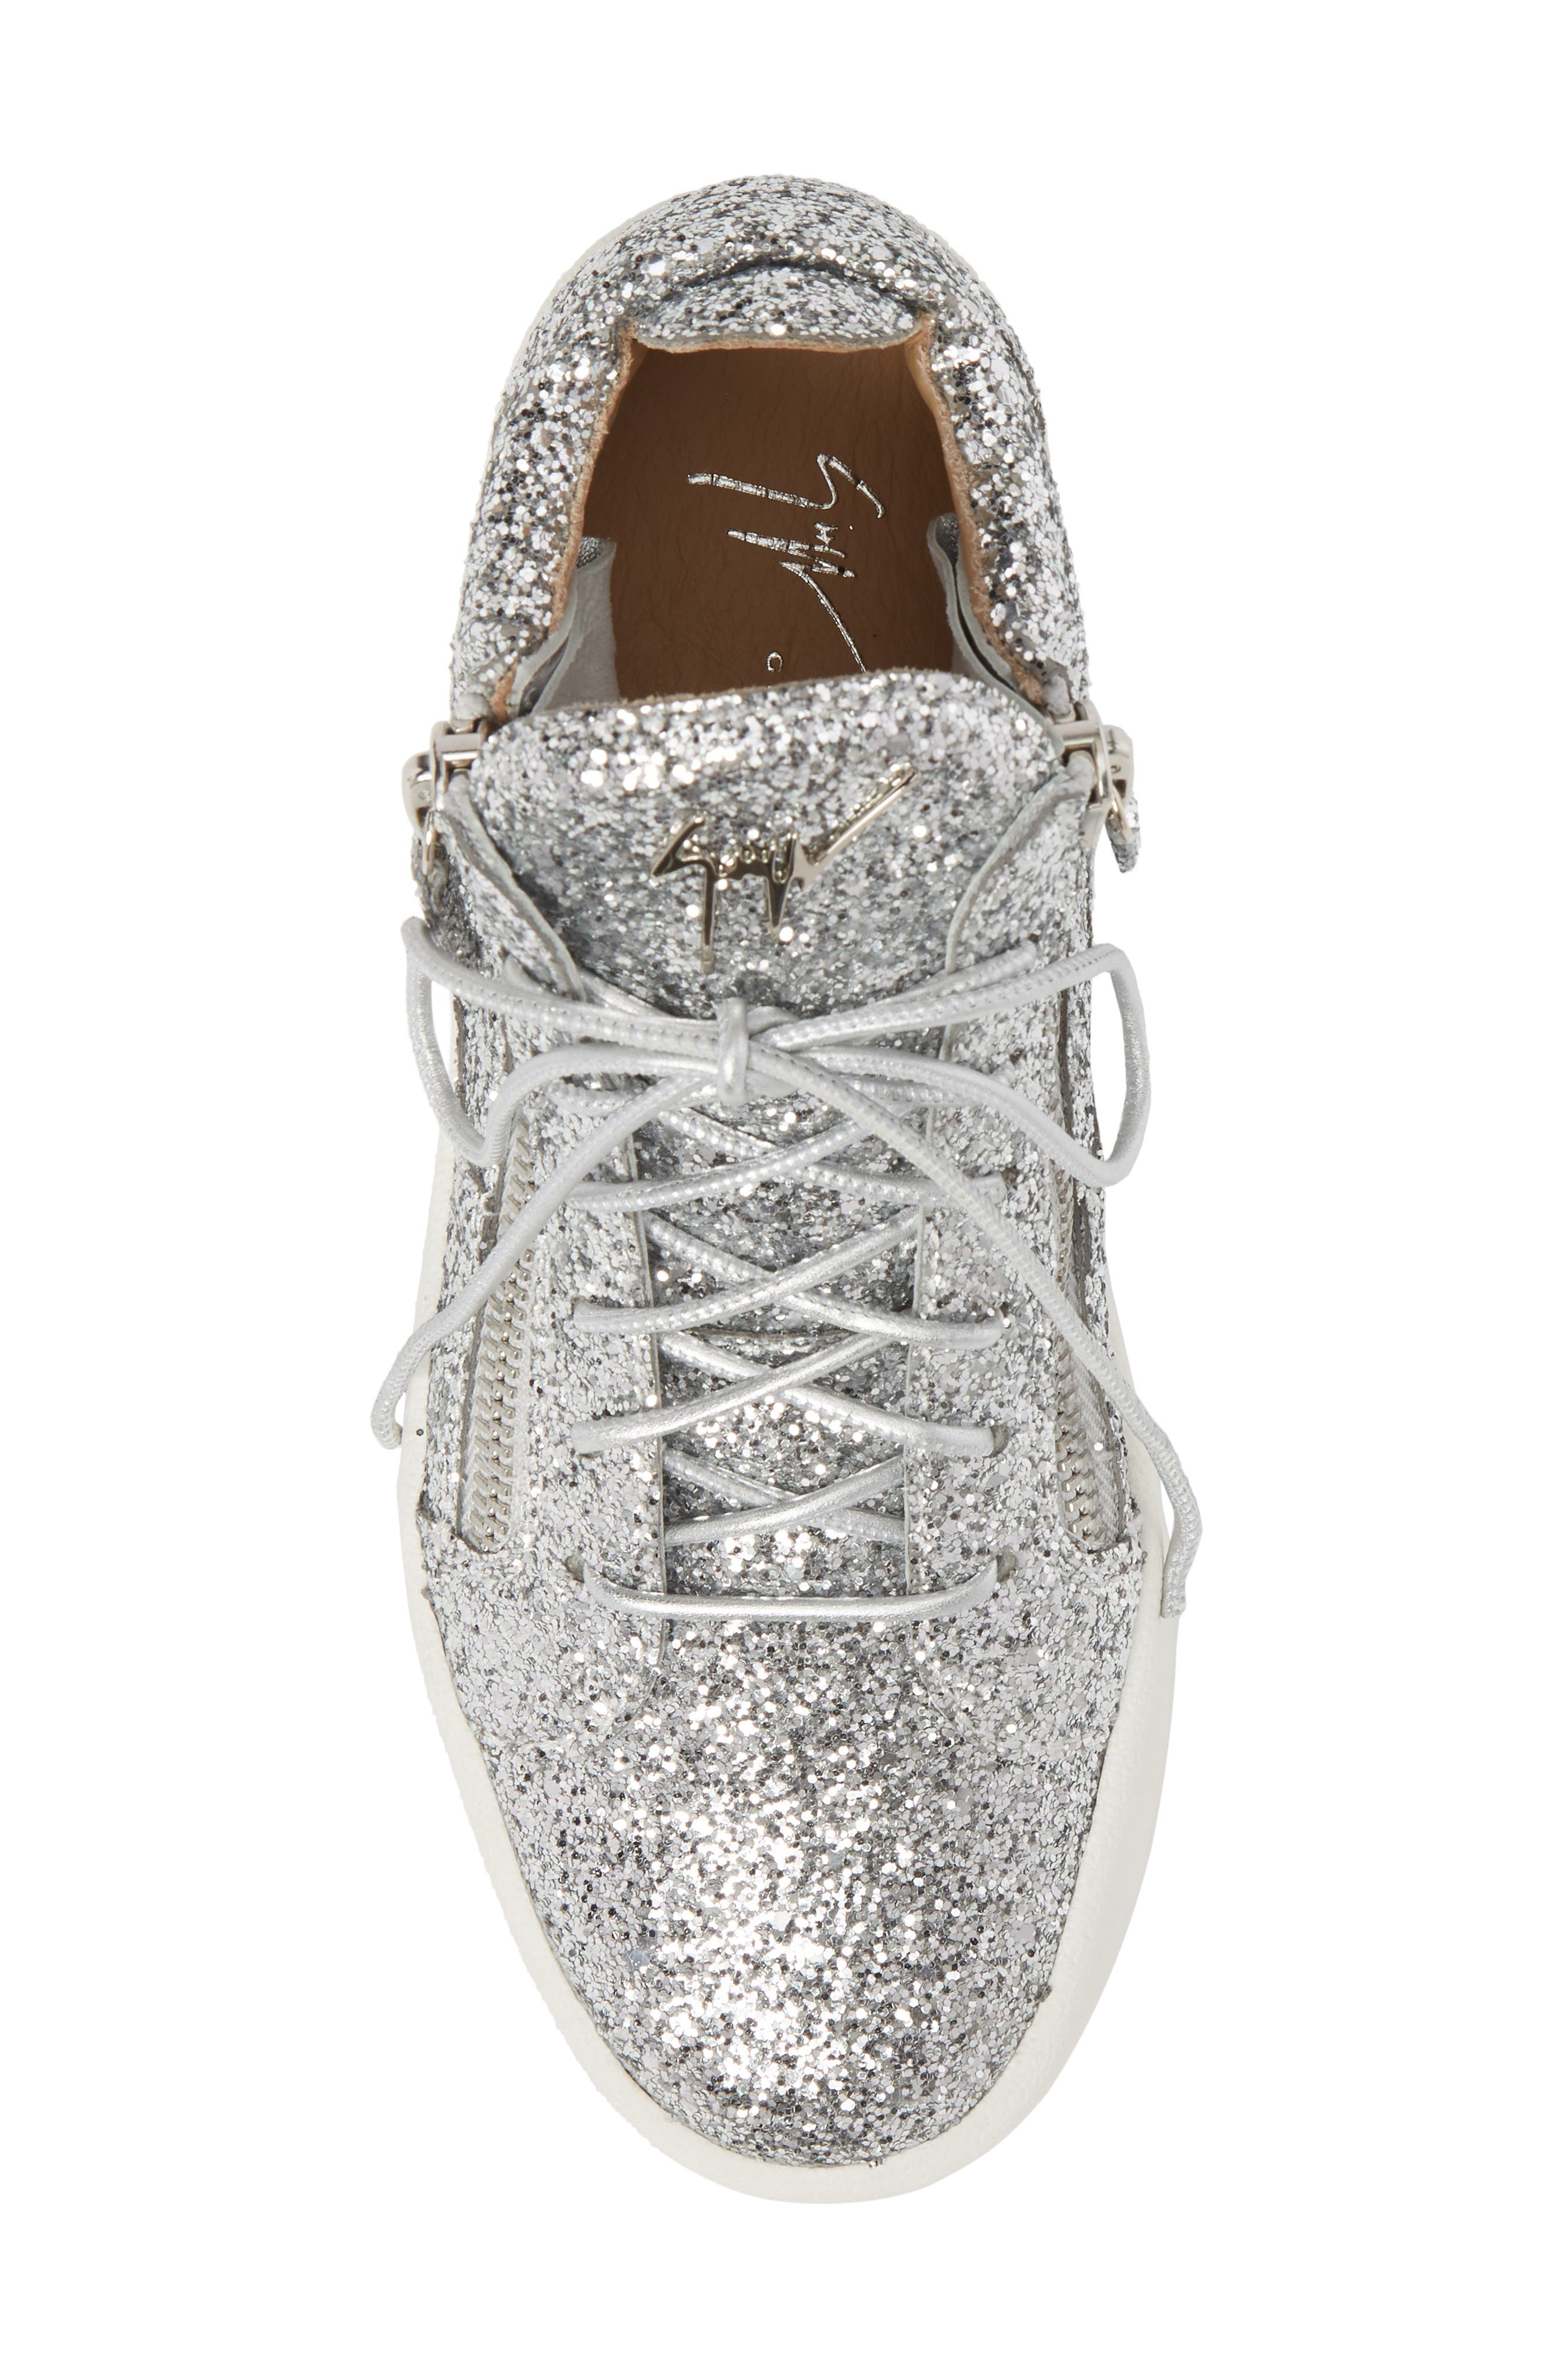 May London High Top Sneaker,                             Alternate thumbnail 5, color,                             SILVER